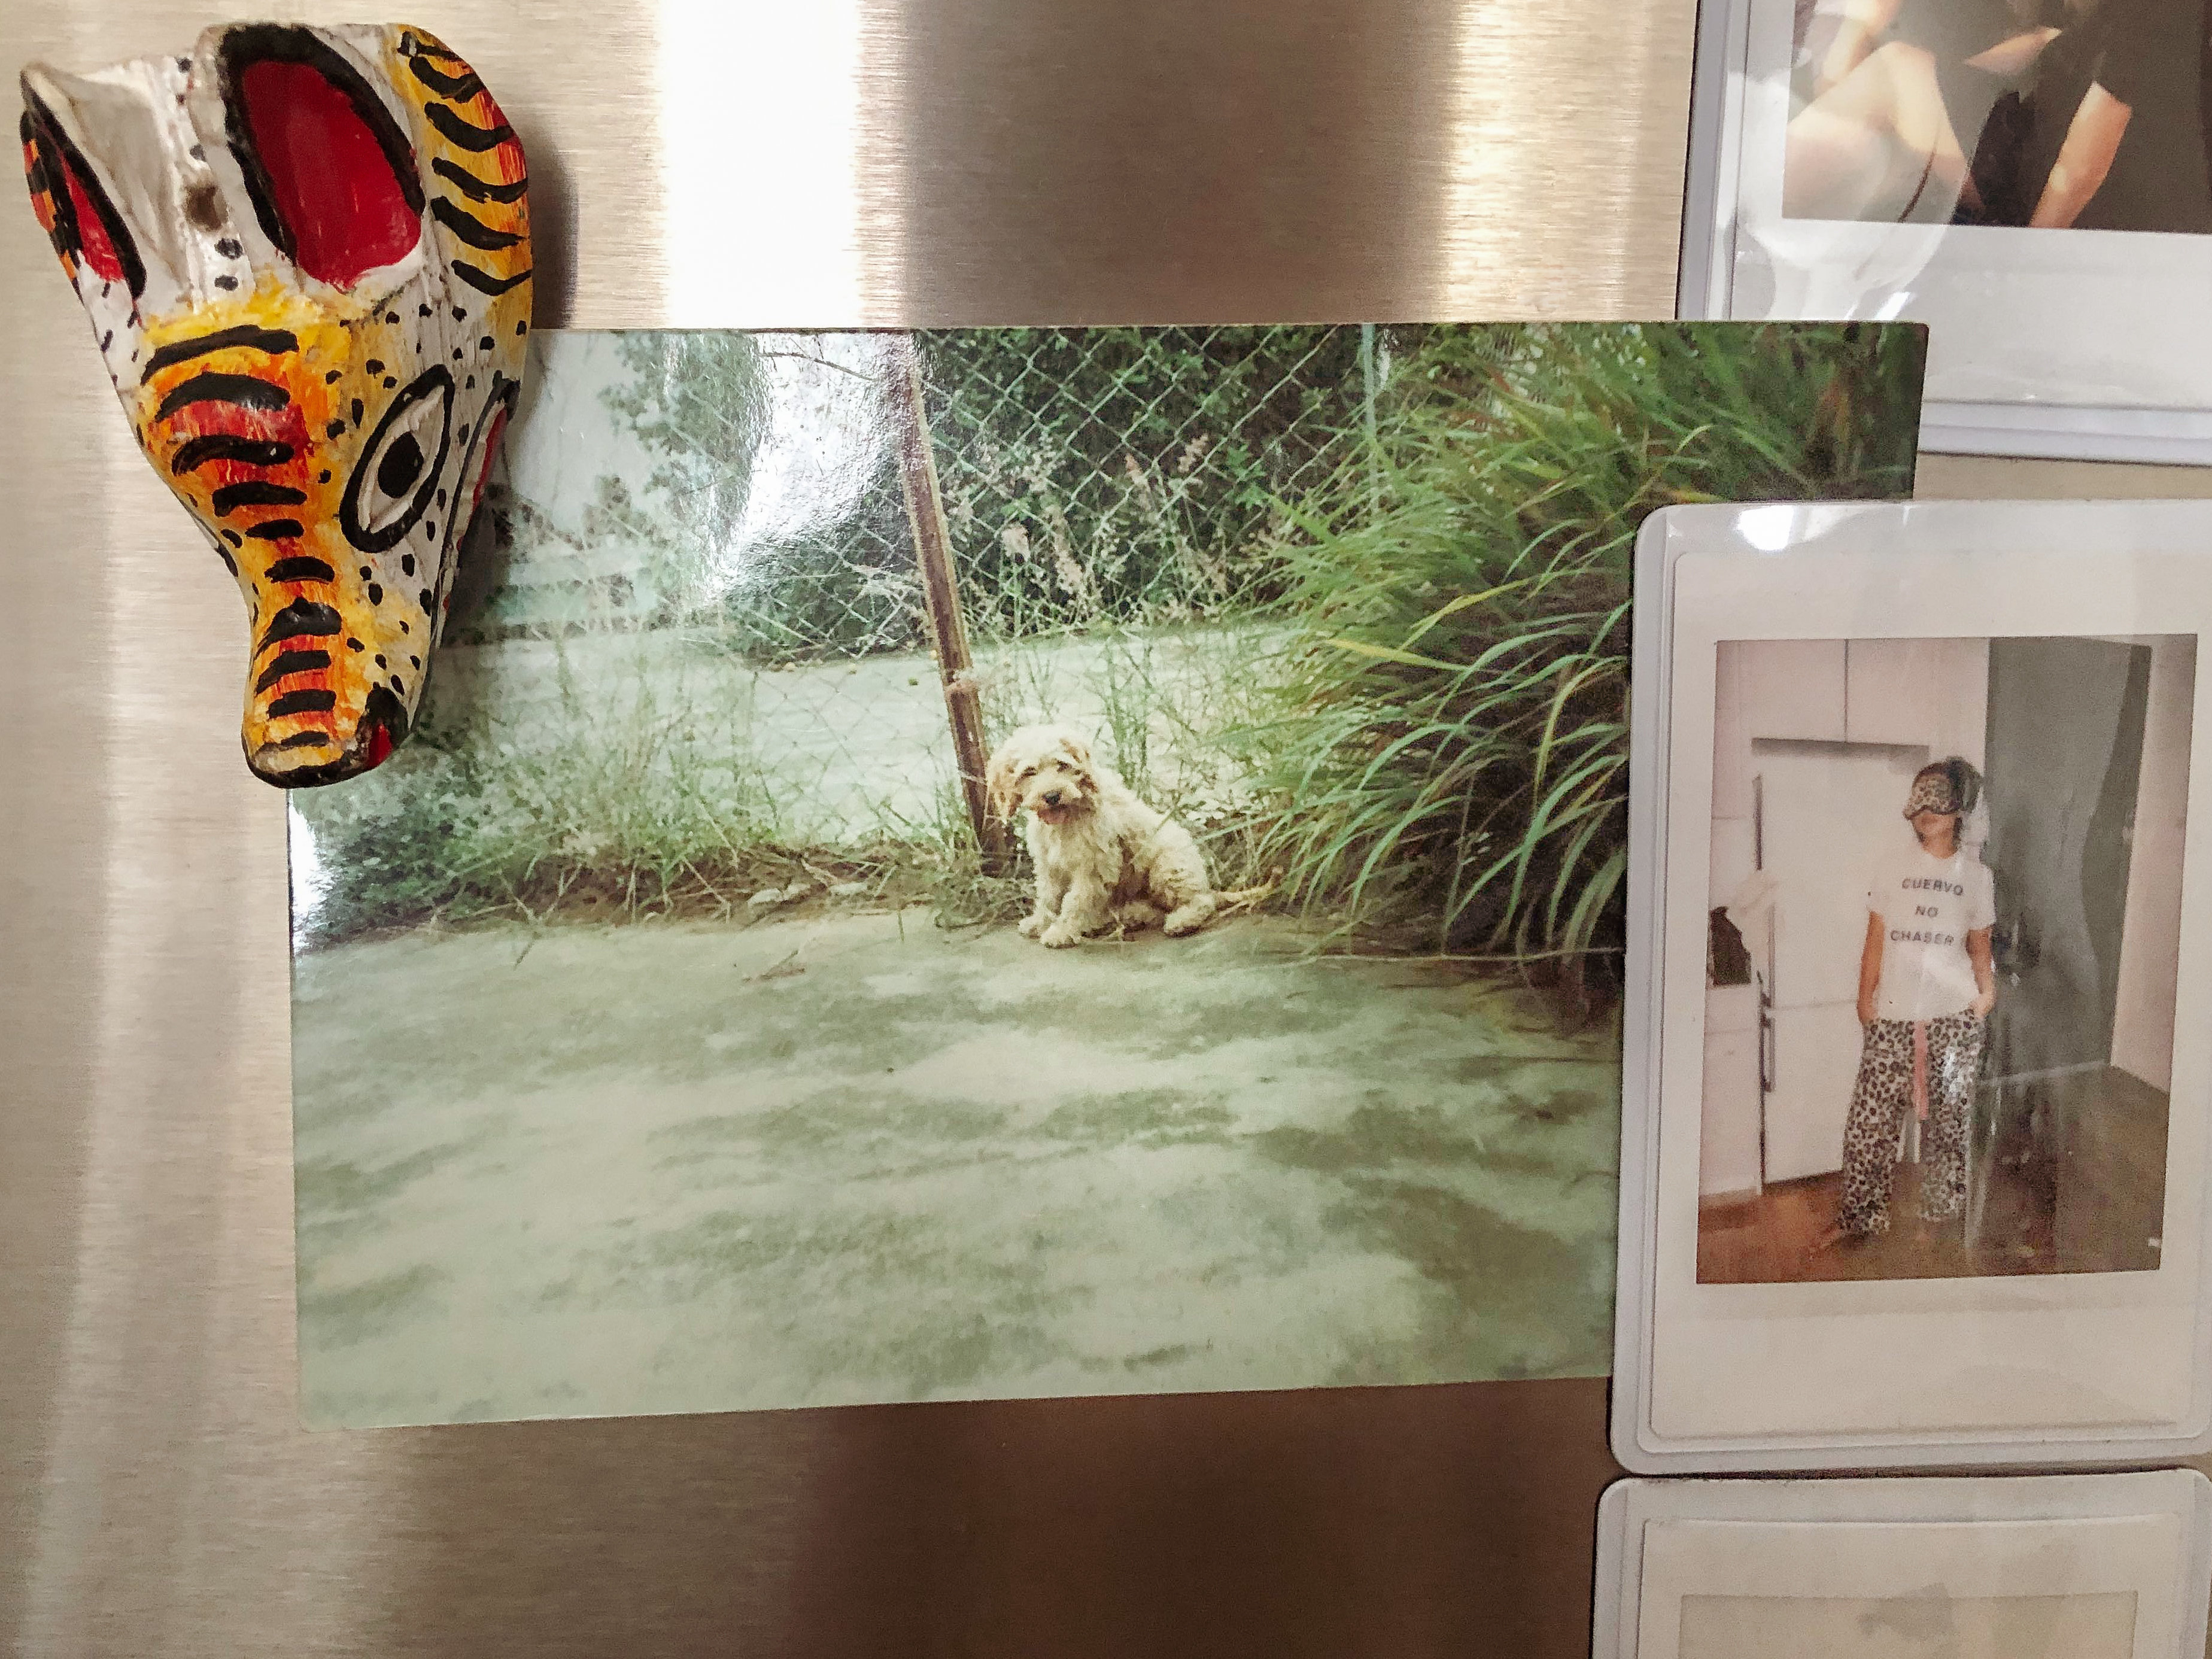 A photo of Pancho that I keep on my fridge to remind me of my first love.